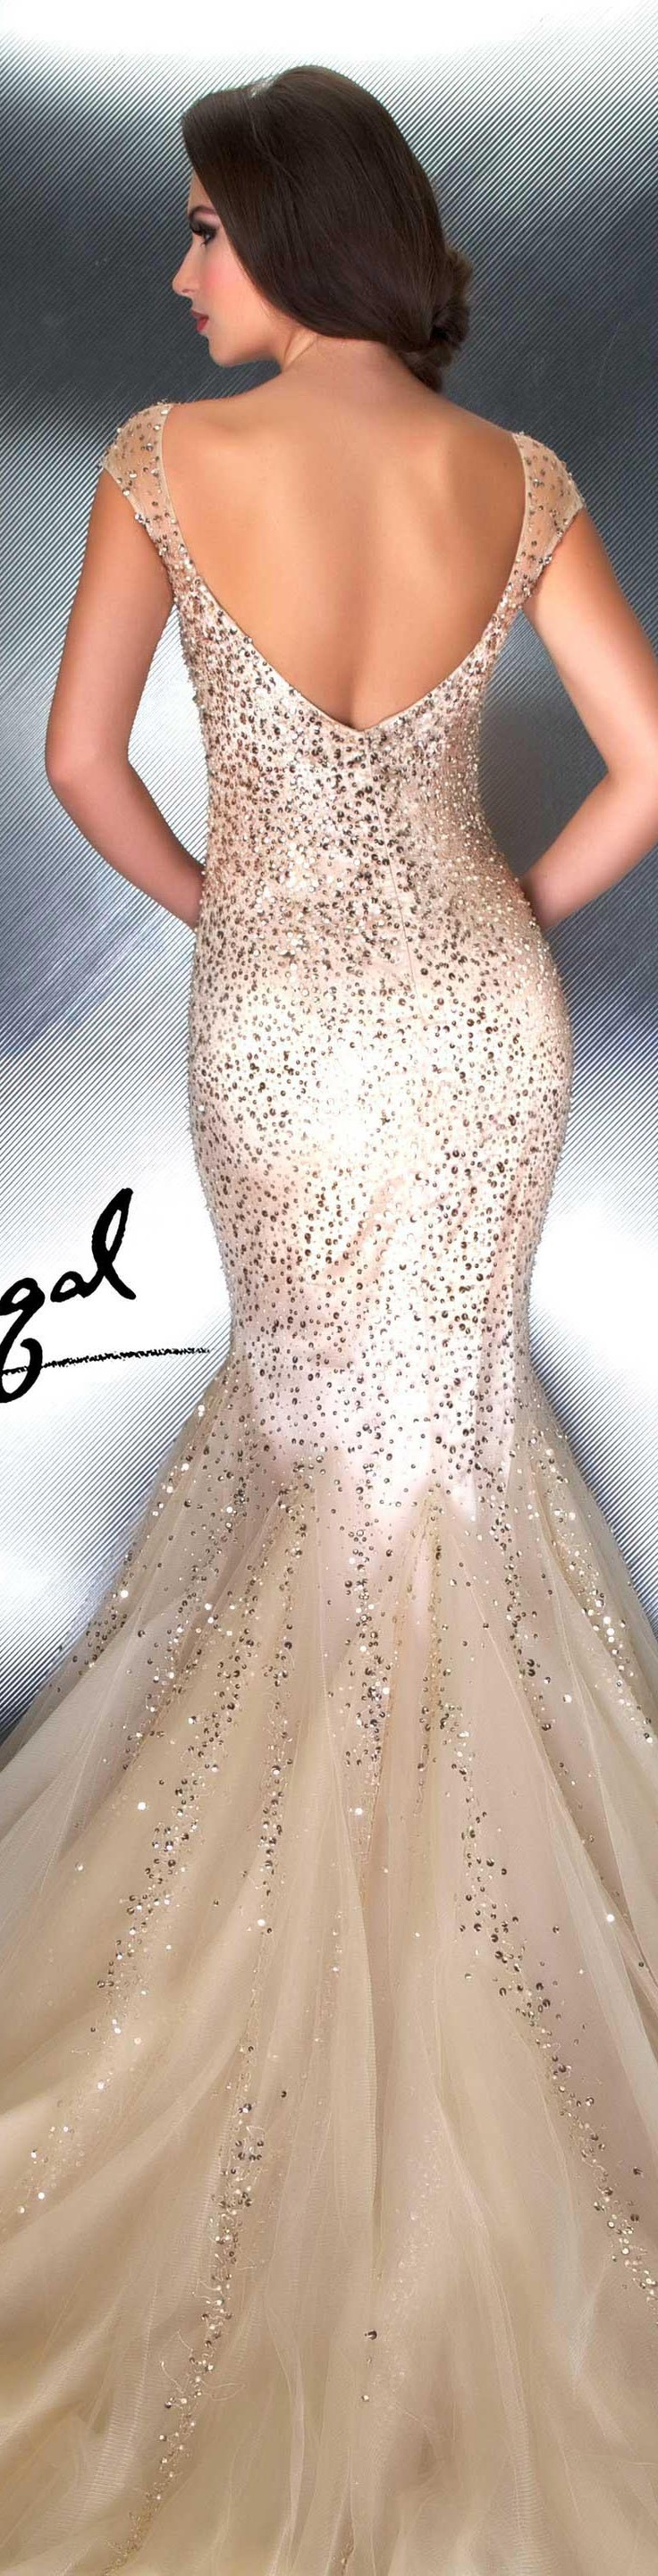 Ok wedding gallery the beauty dress of cheongsam 2013 - Mac Duggal Couture Dress Nude Couture Dresses Style 1250d Back